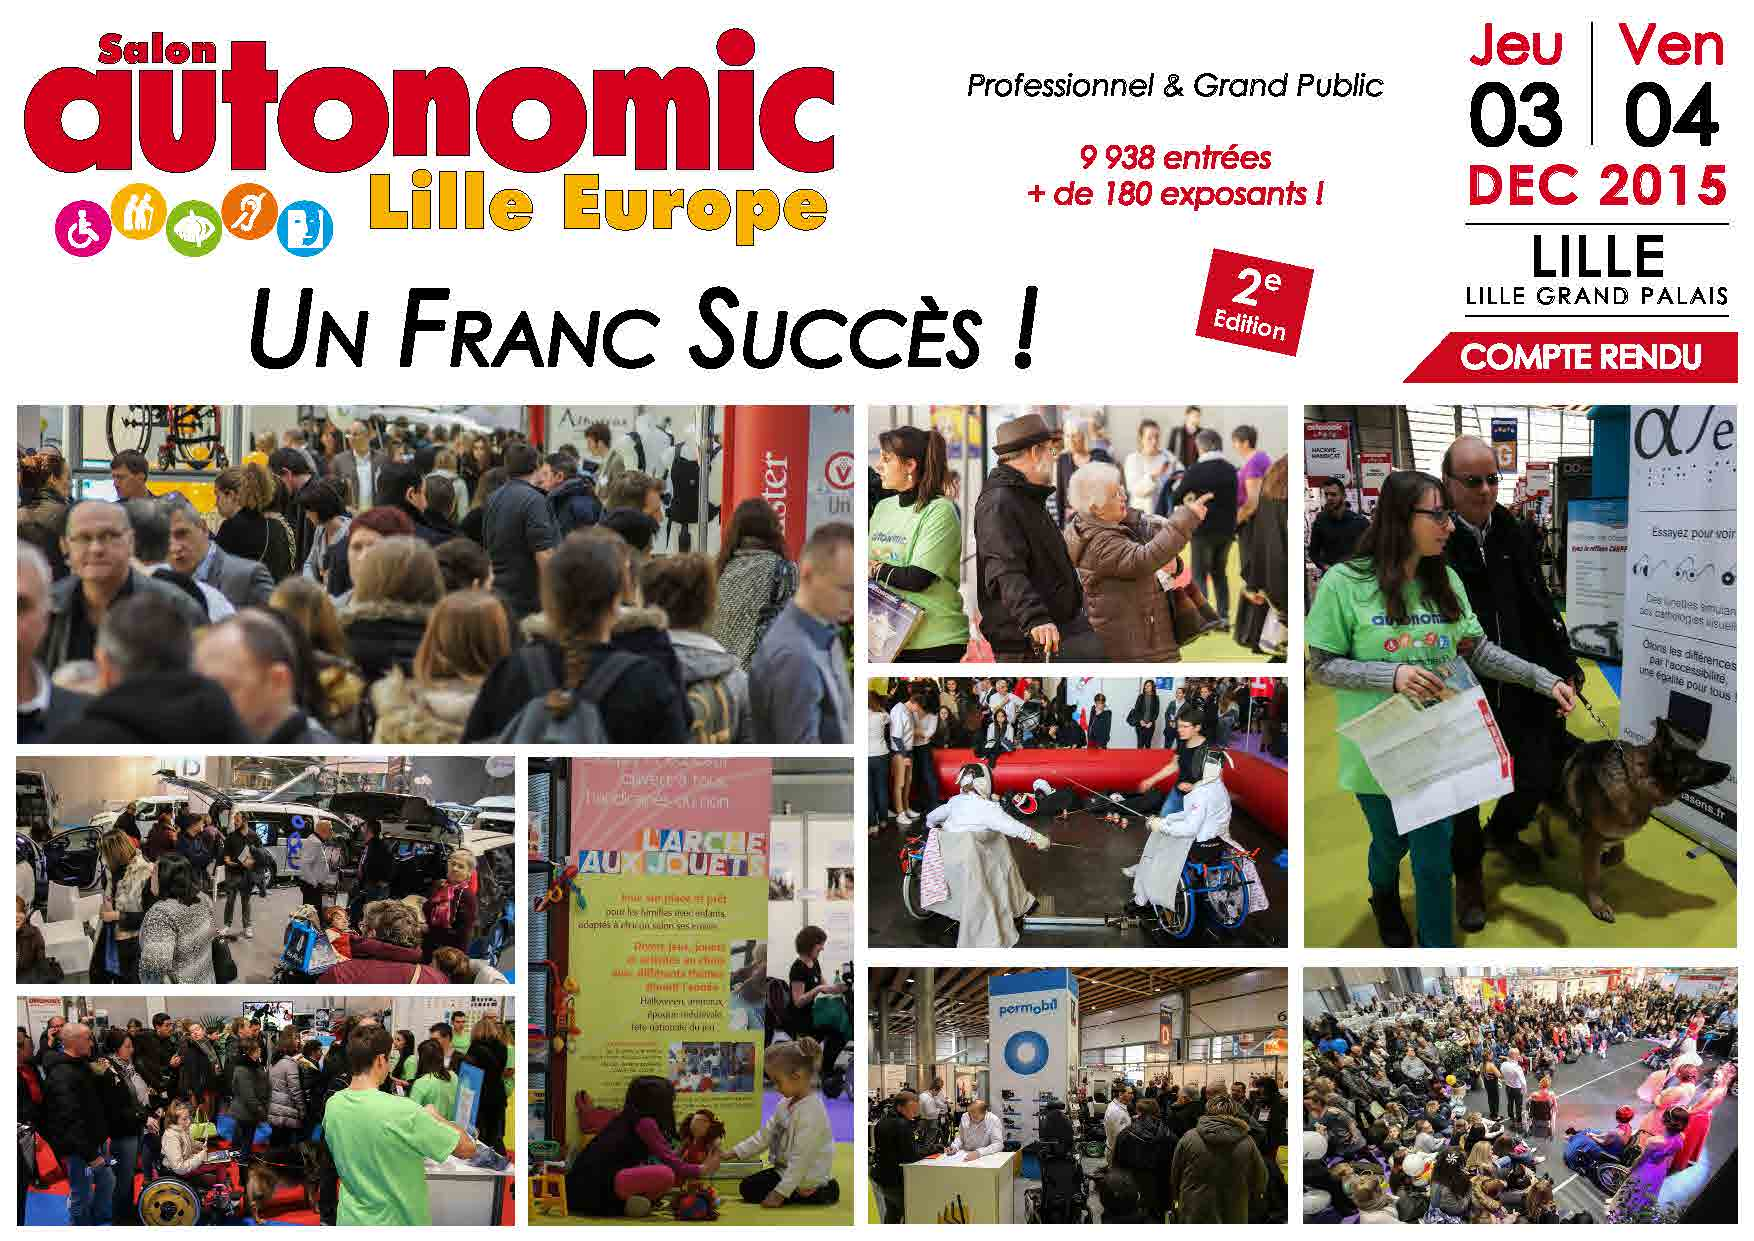 Compte rendu salon autonomic expo autonomic 8 salons for Salon autonomic lille